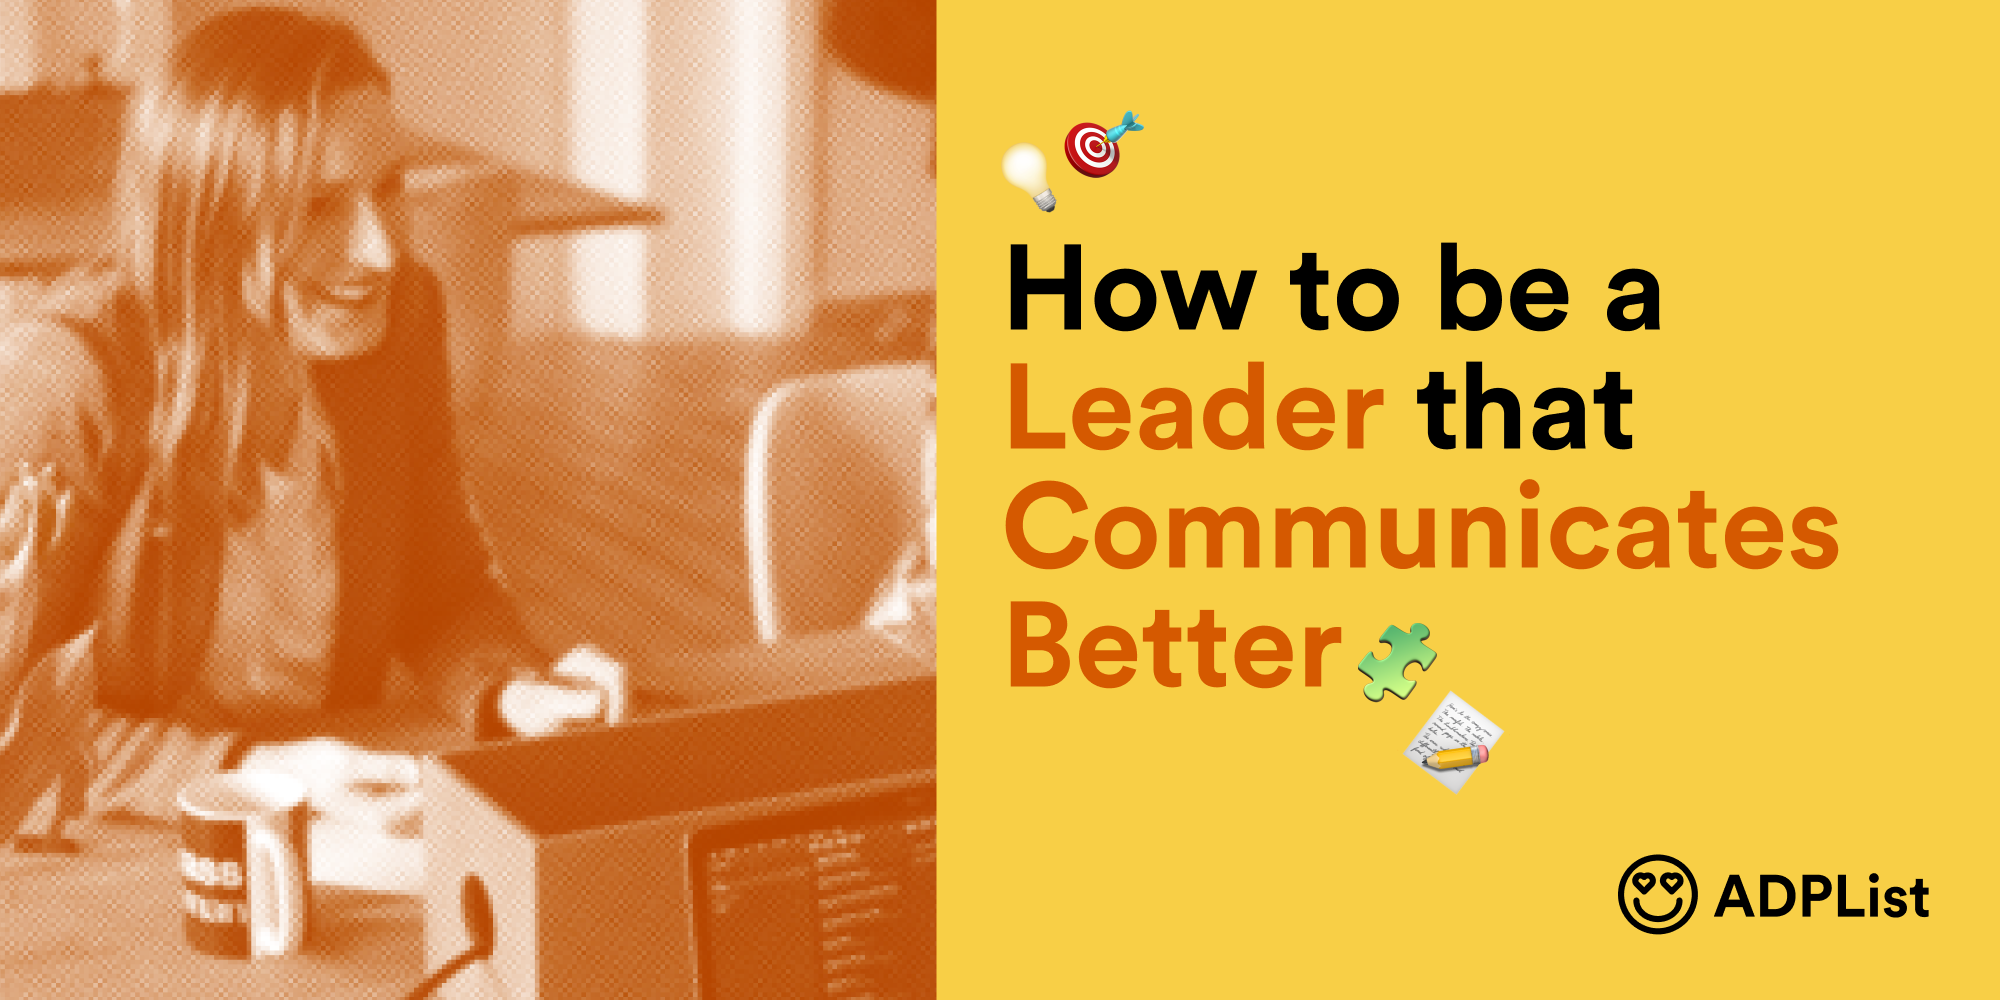 How to be a leader that communicates better?